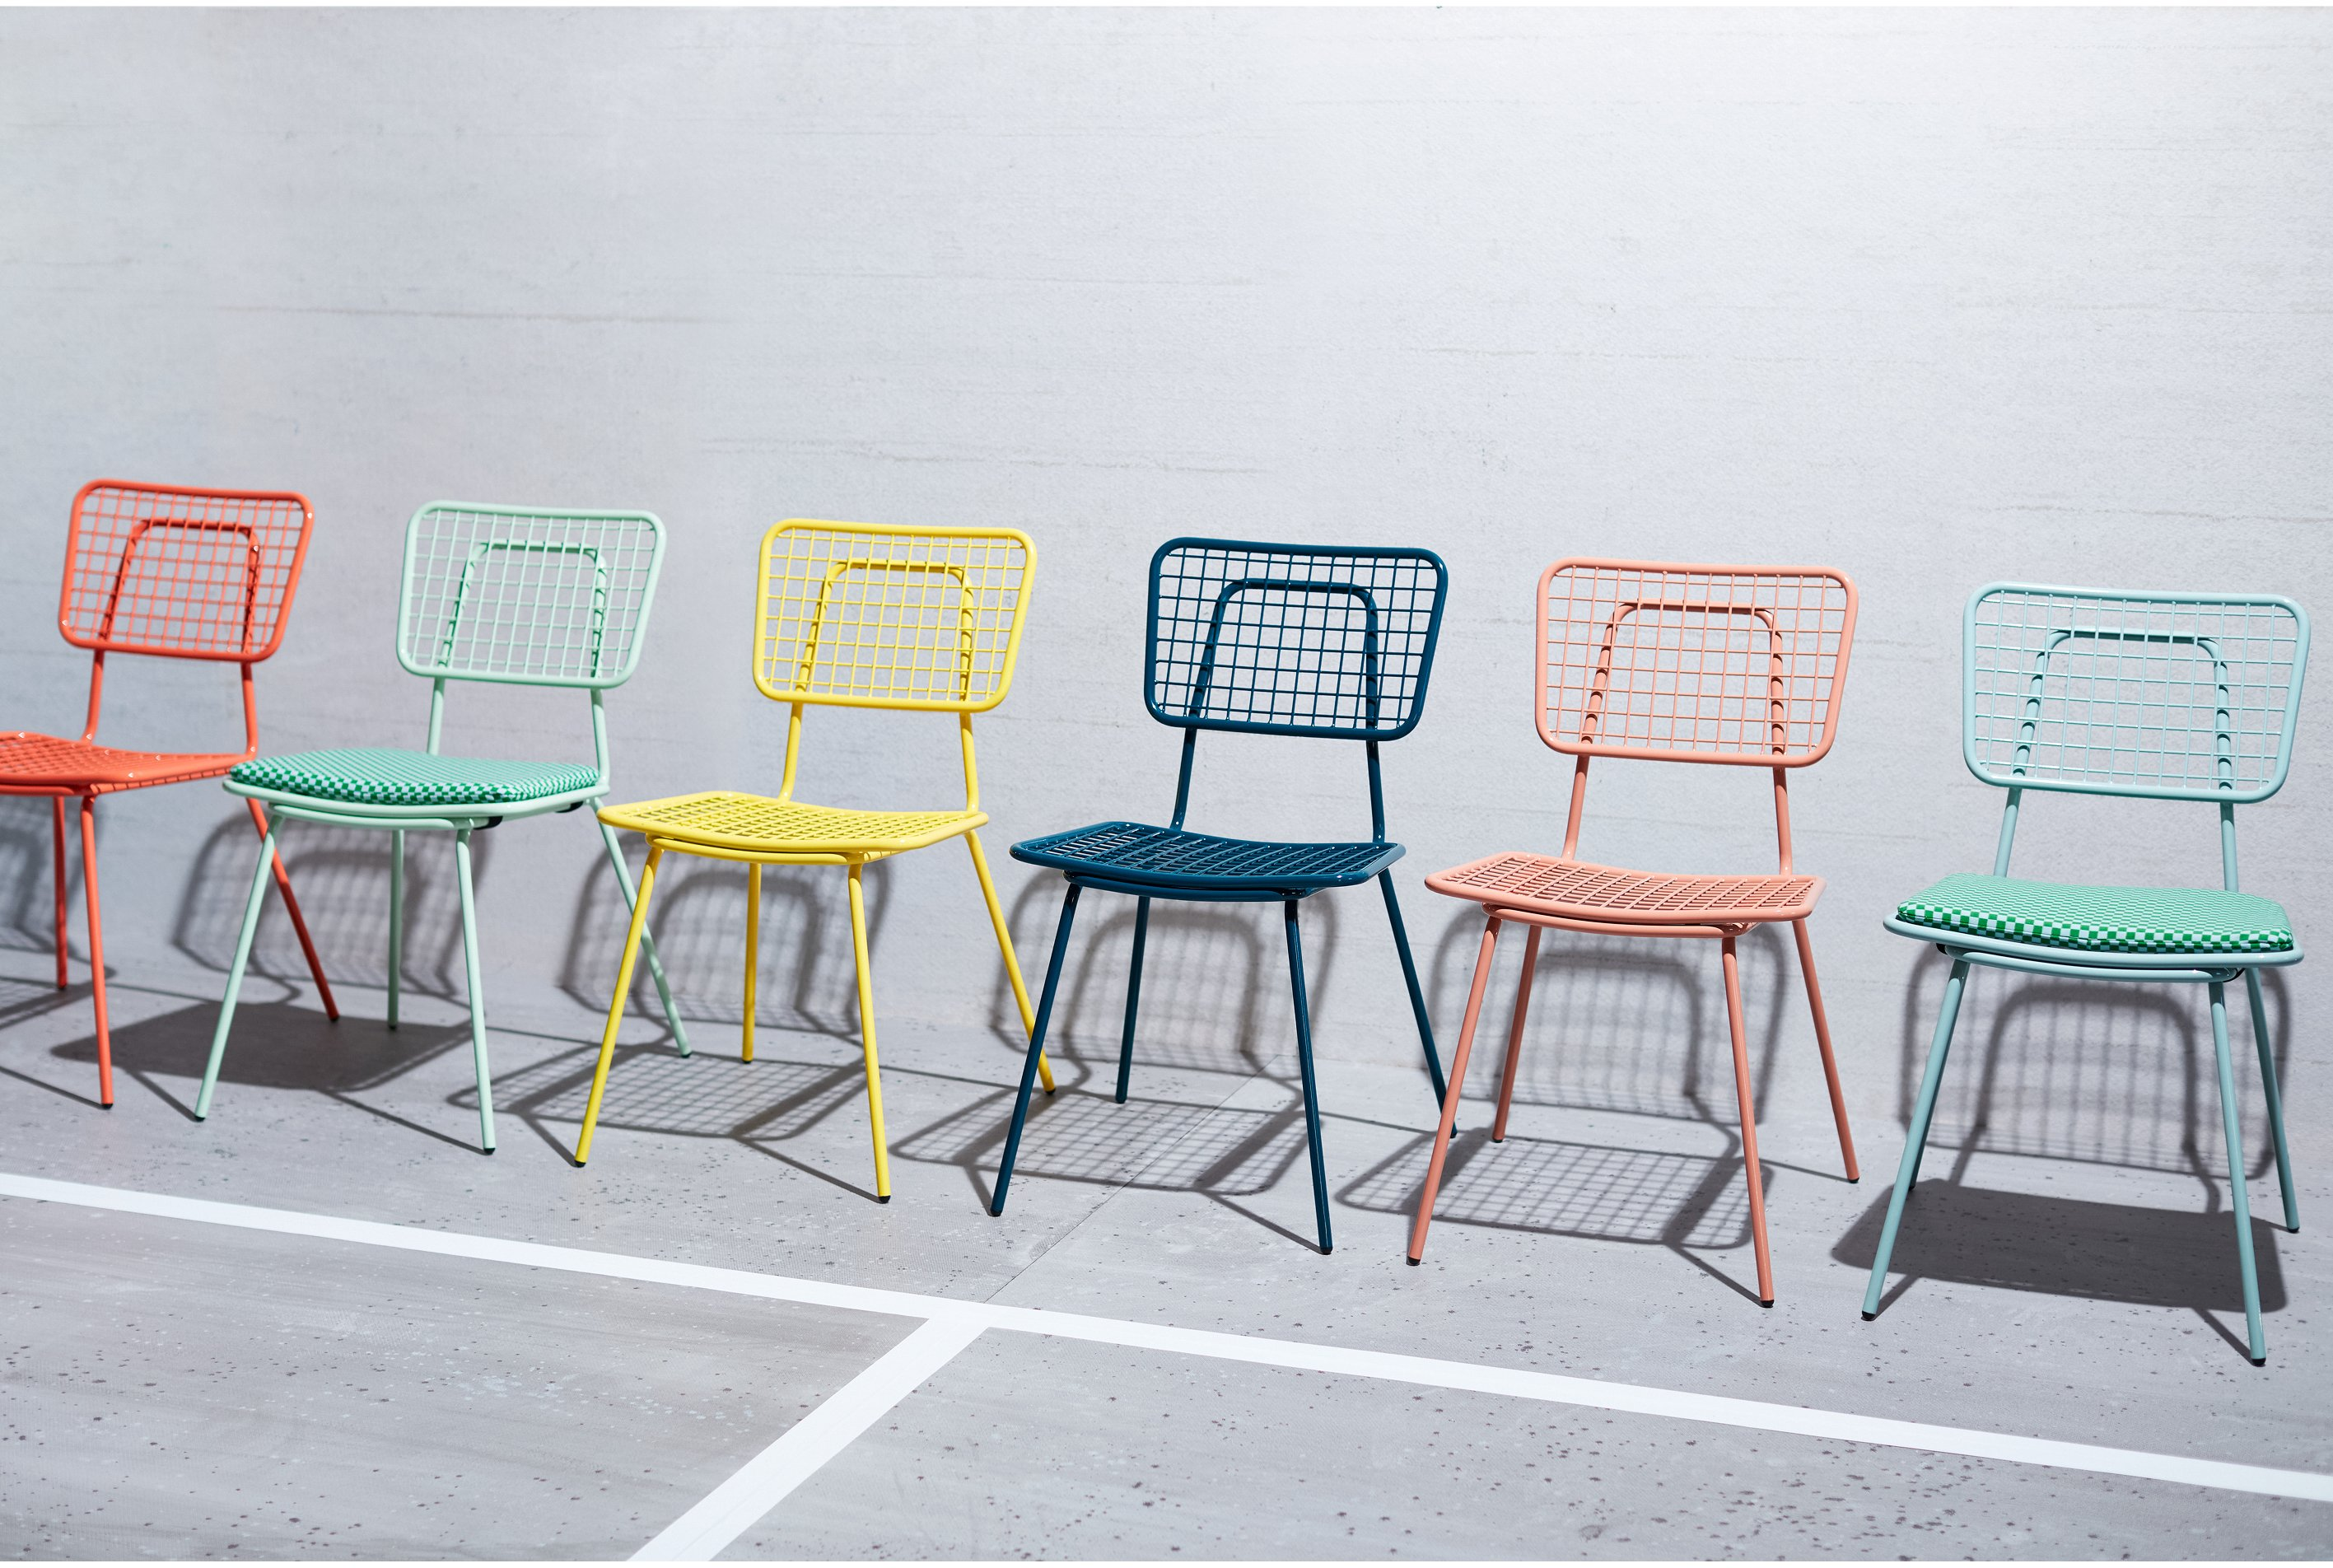 Opla Outdoor Chairs for restaurant